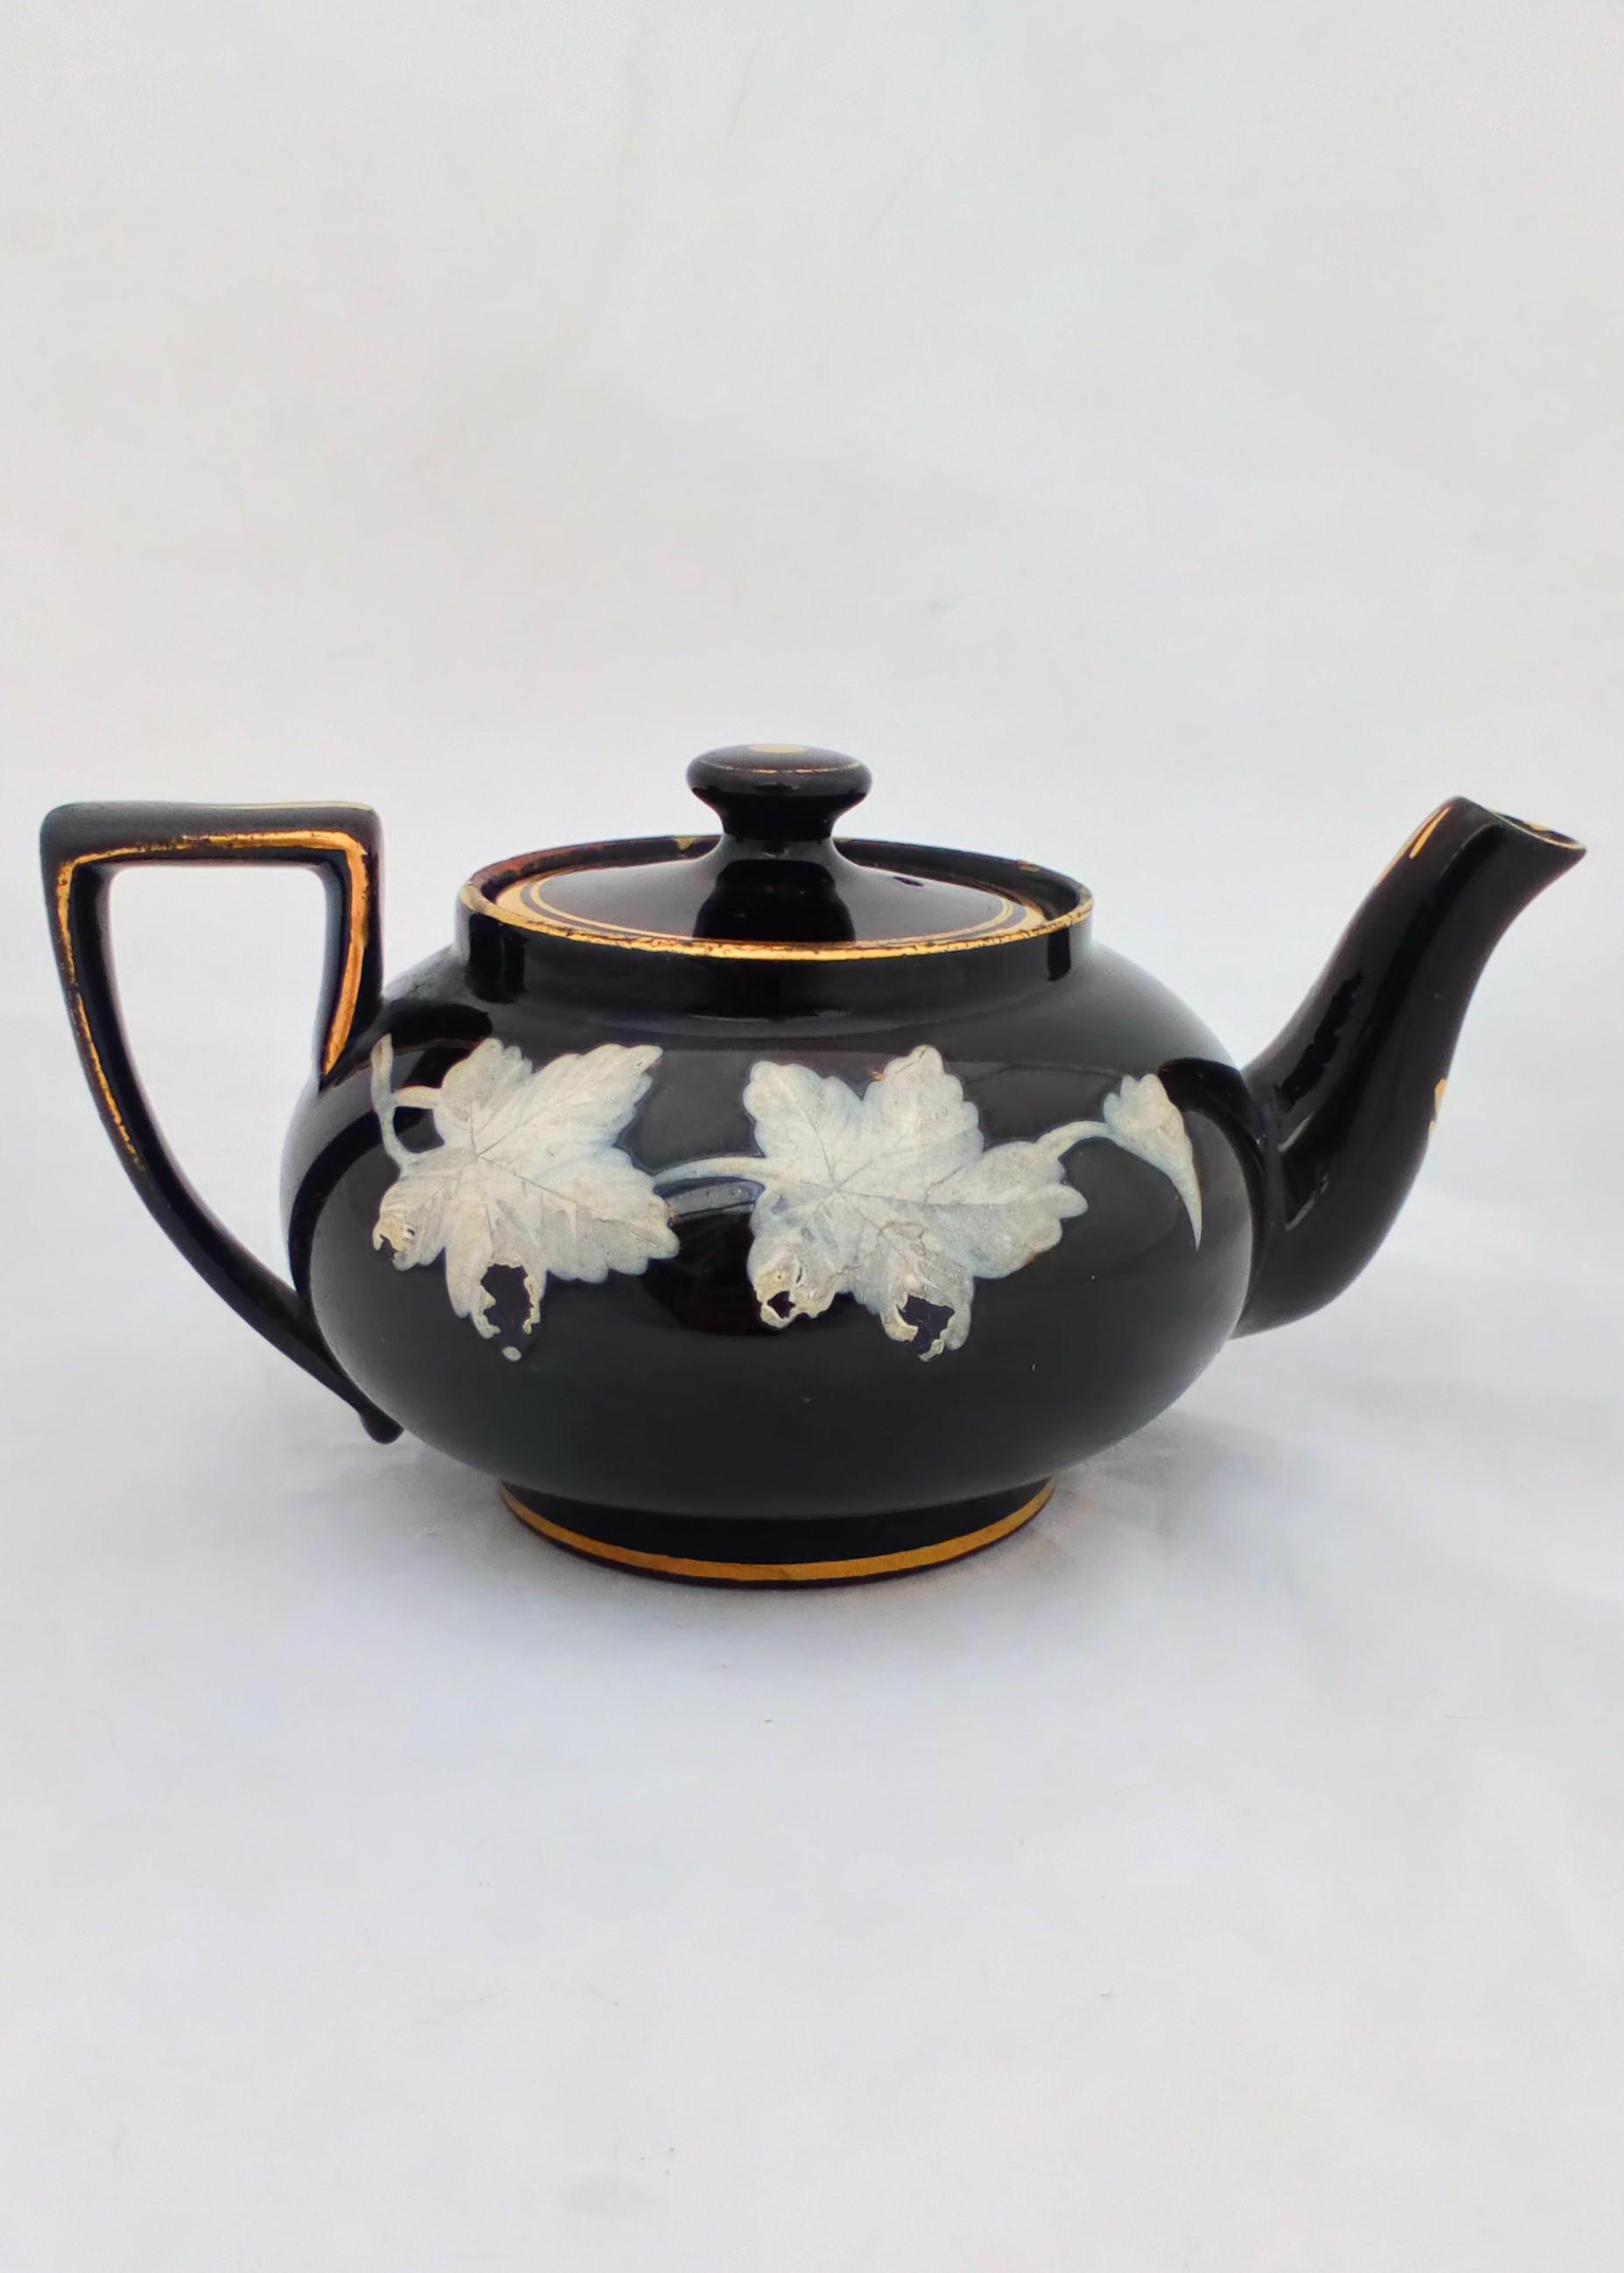 Victorian black glazed teapot with white enamelled vine leaves and stems antique circa 1850